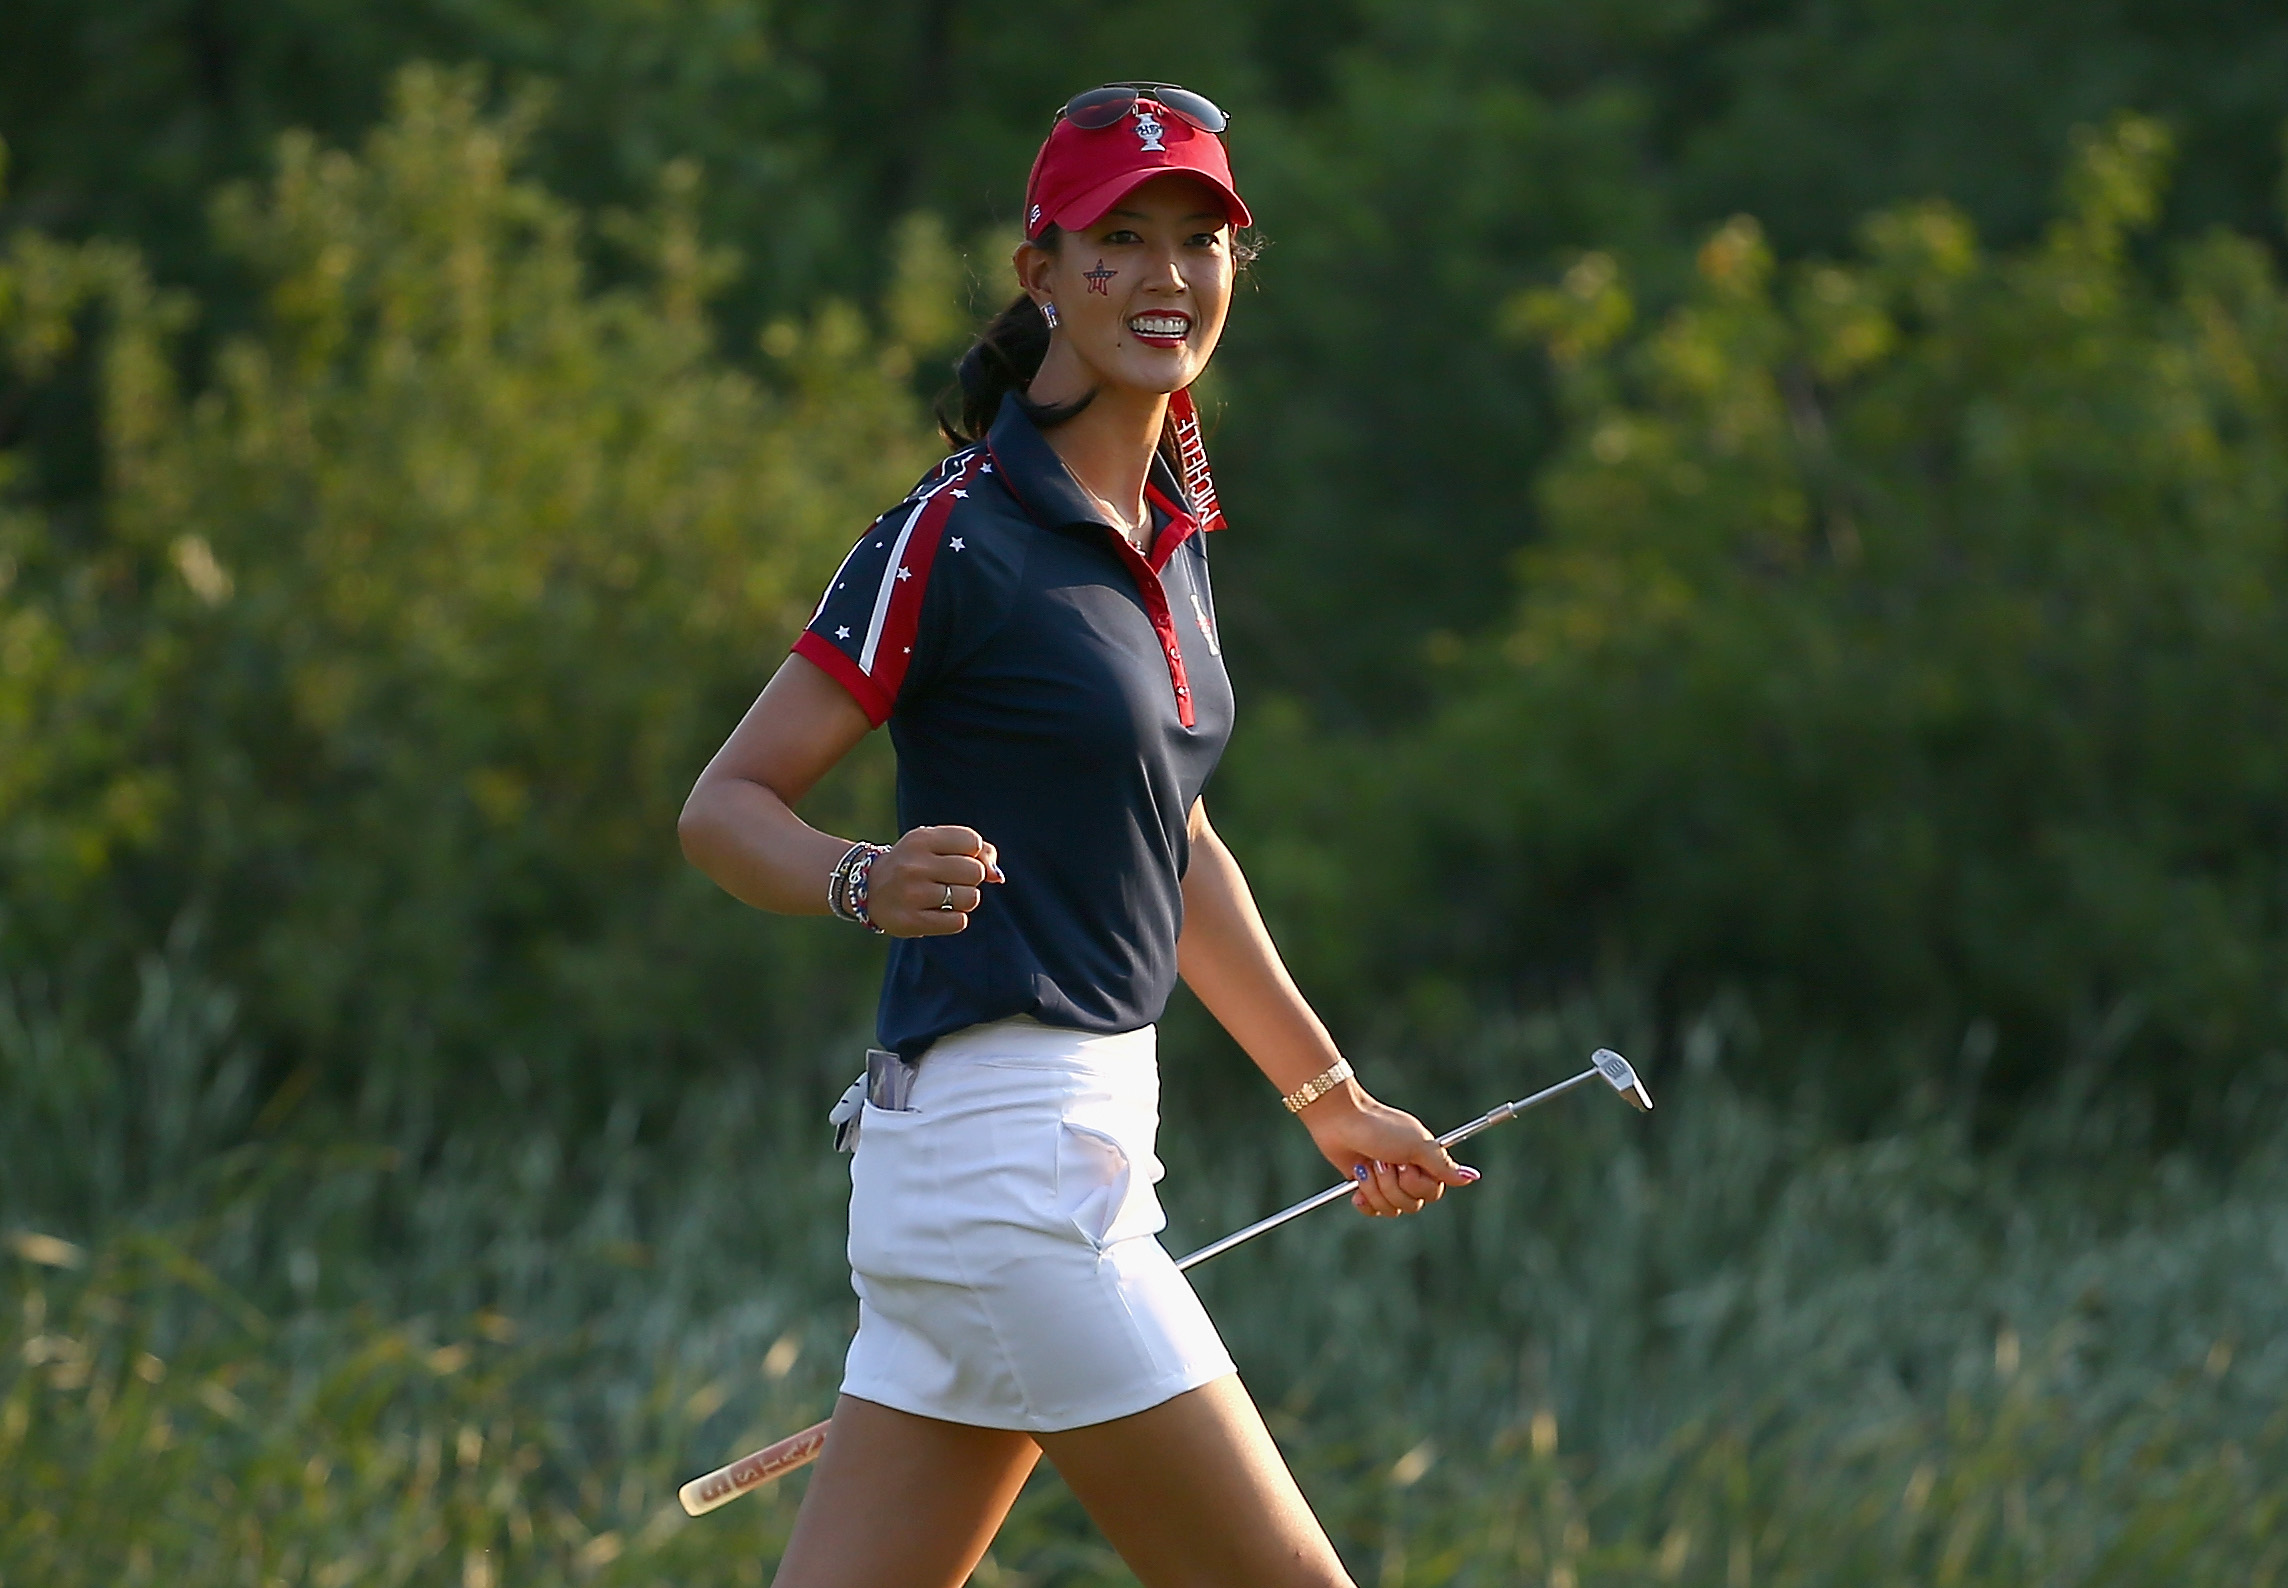 Michelle Wie has patriotic custom shoes made for the Solheim Cup this year (Photo: Getty Images)